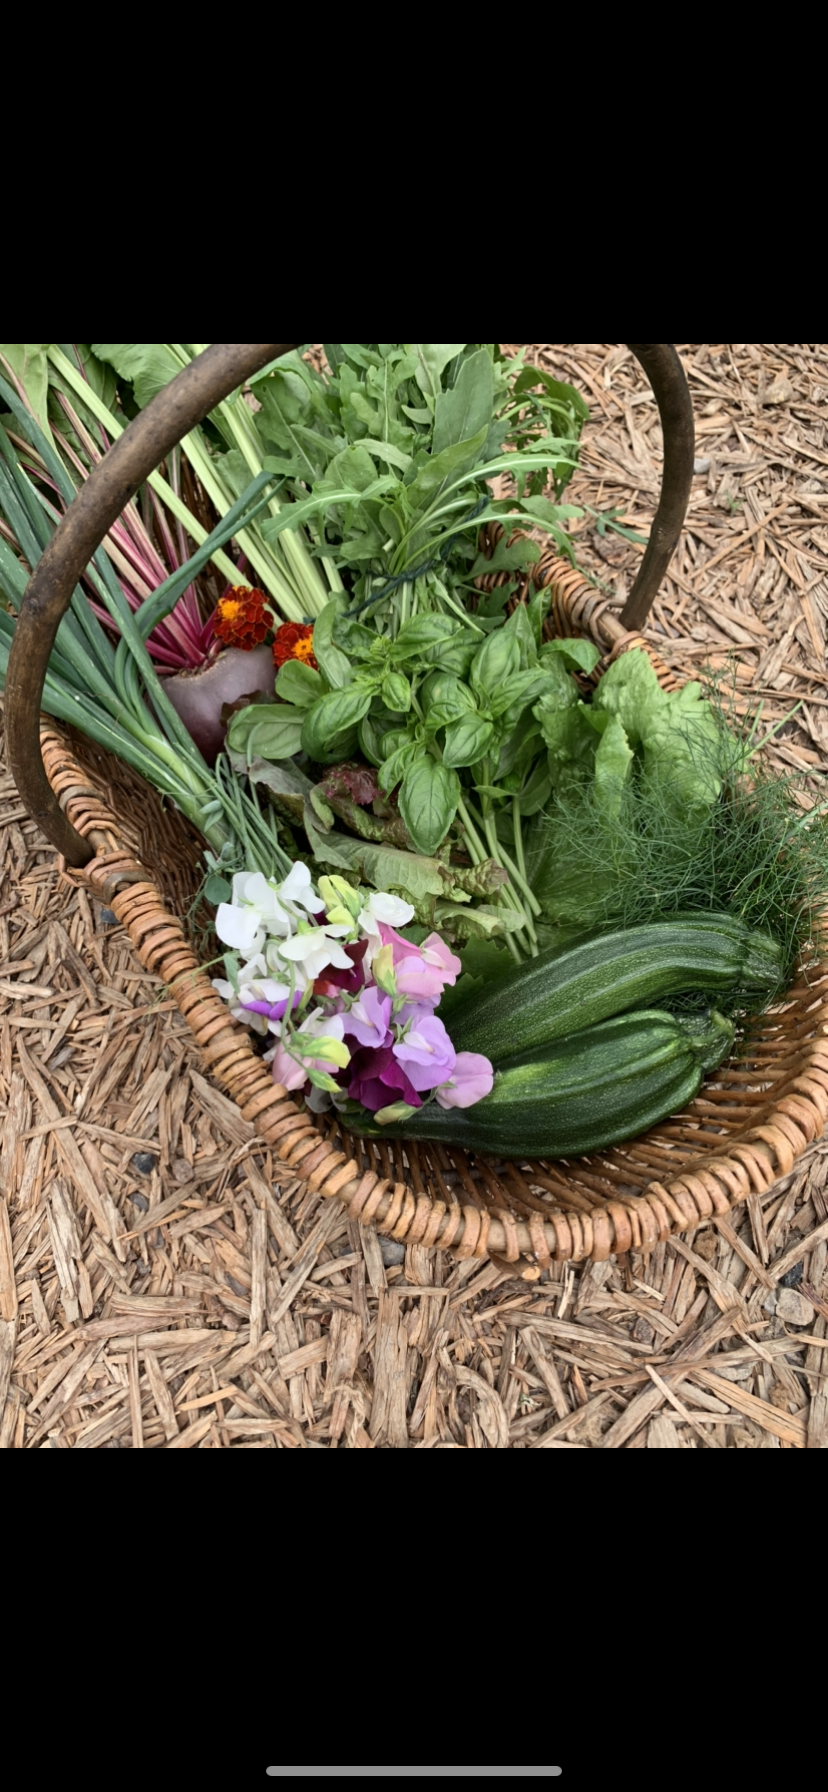 trug of produce